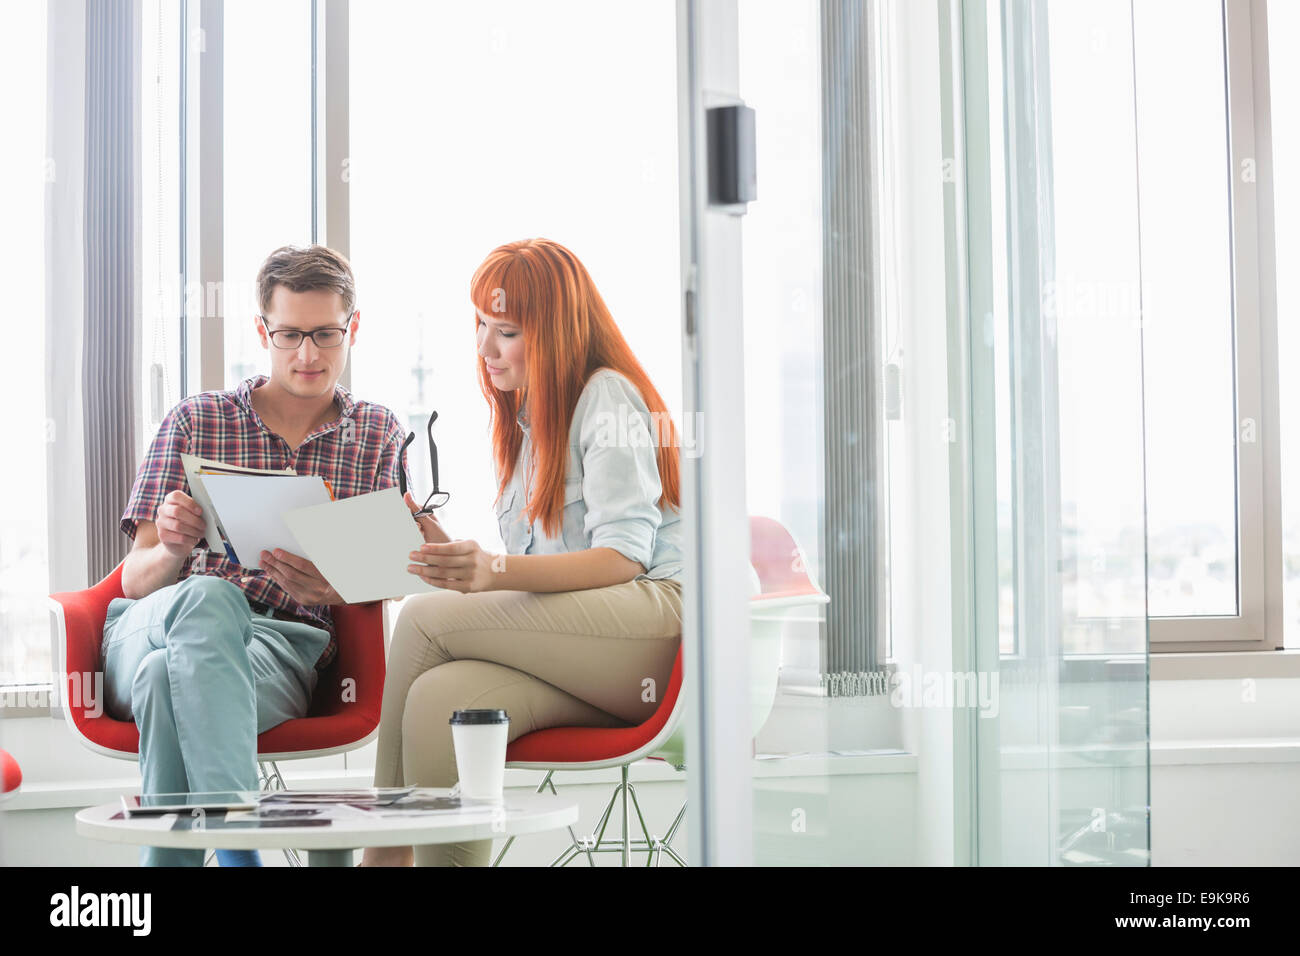 Business colleagues analyzing documents in creative office - Stock Image